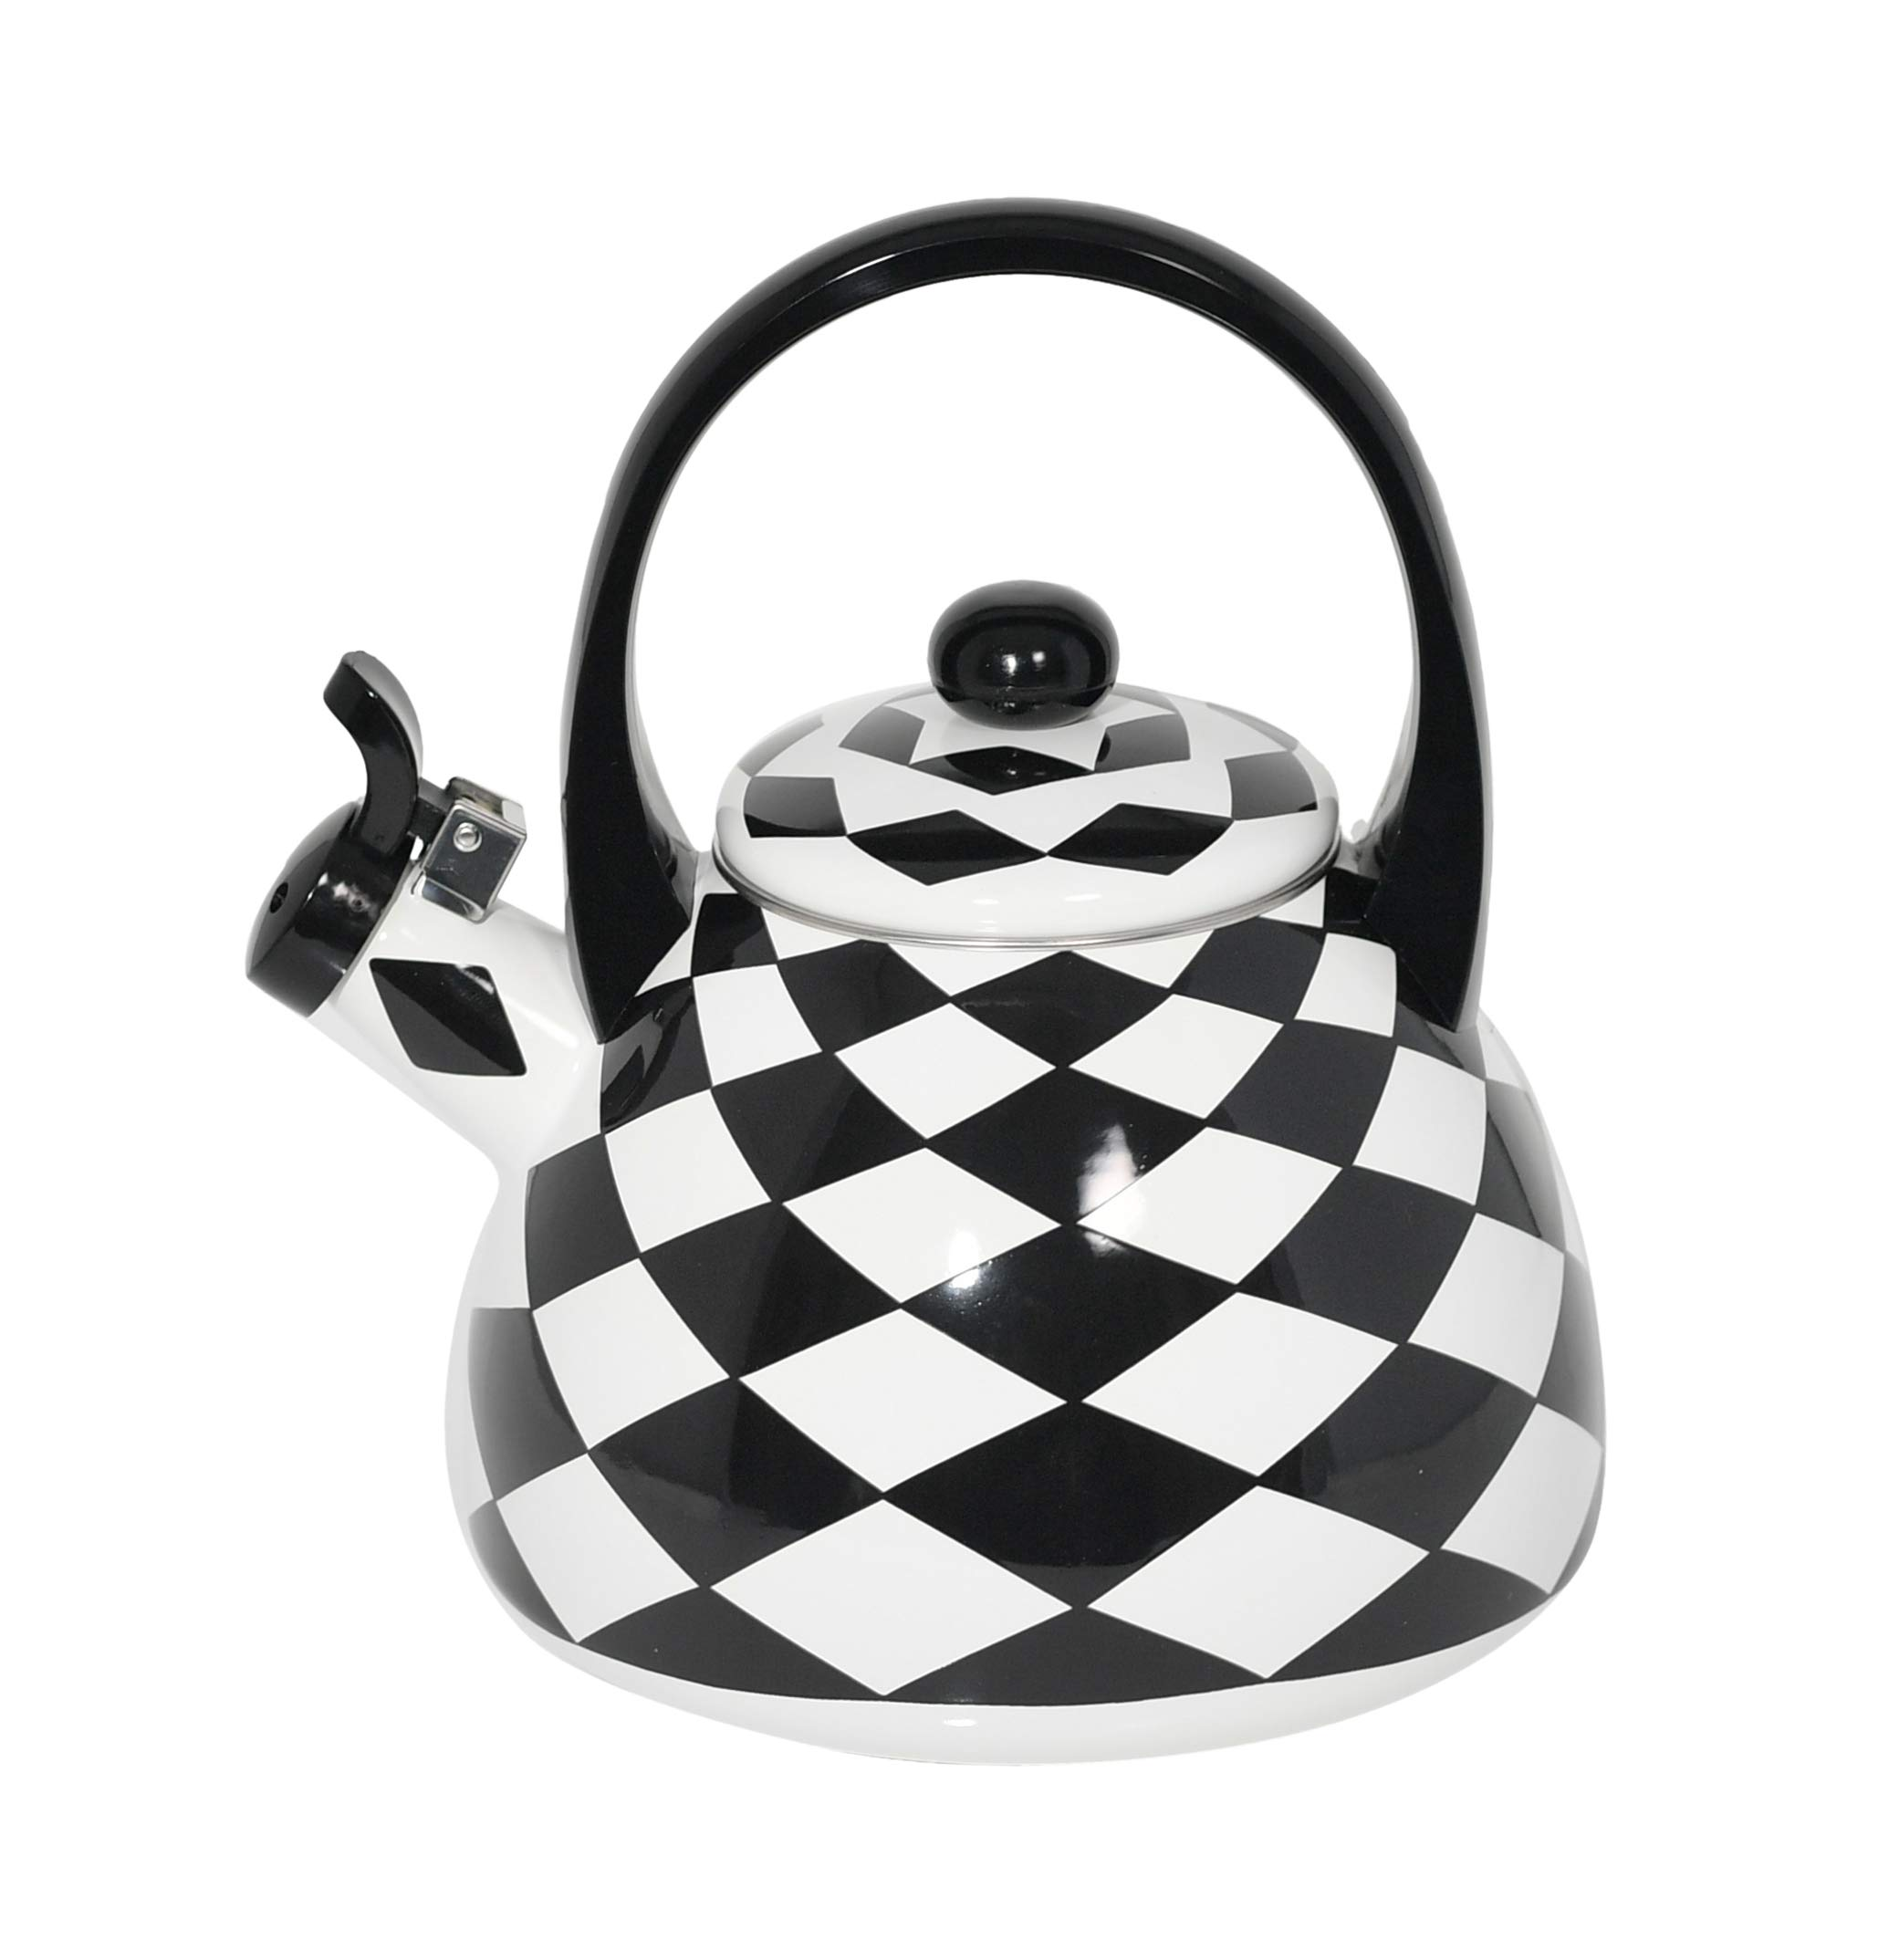 HOME-X Black Checkered Whistling Tea Kettle, Cute Animal Teapot, Kitchen Accessories and Decor